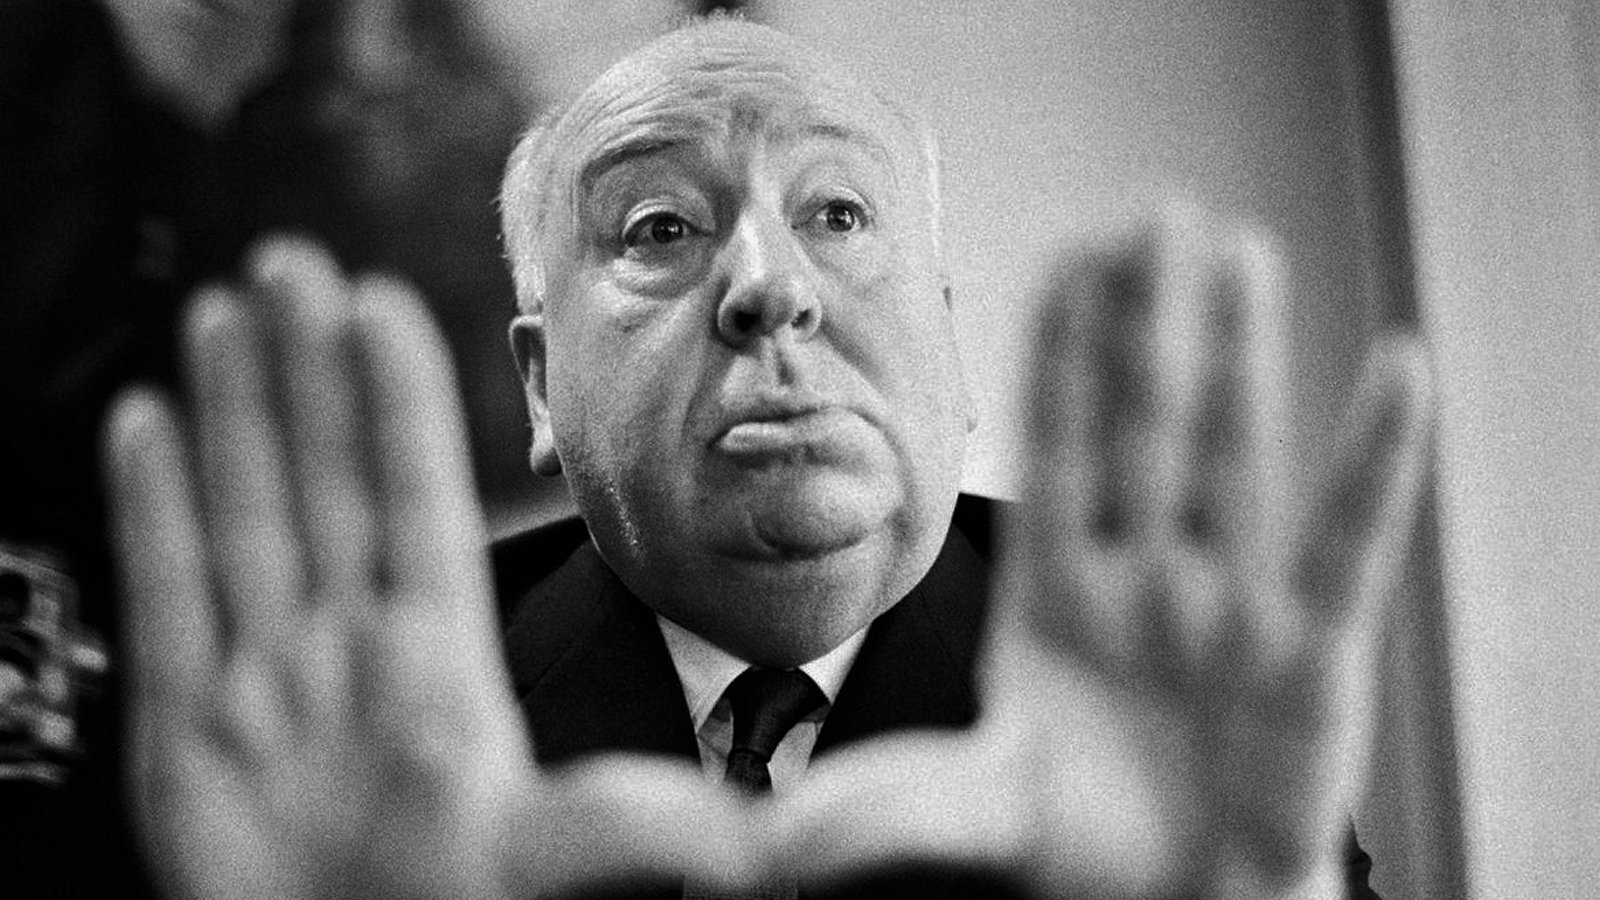 Alfred Hitchcock | Director